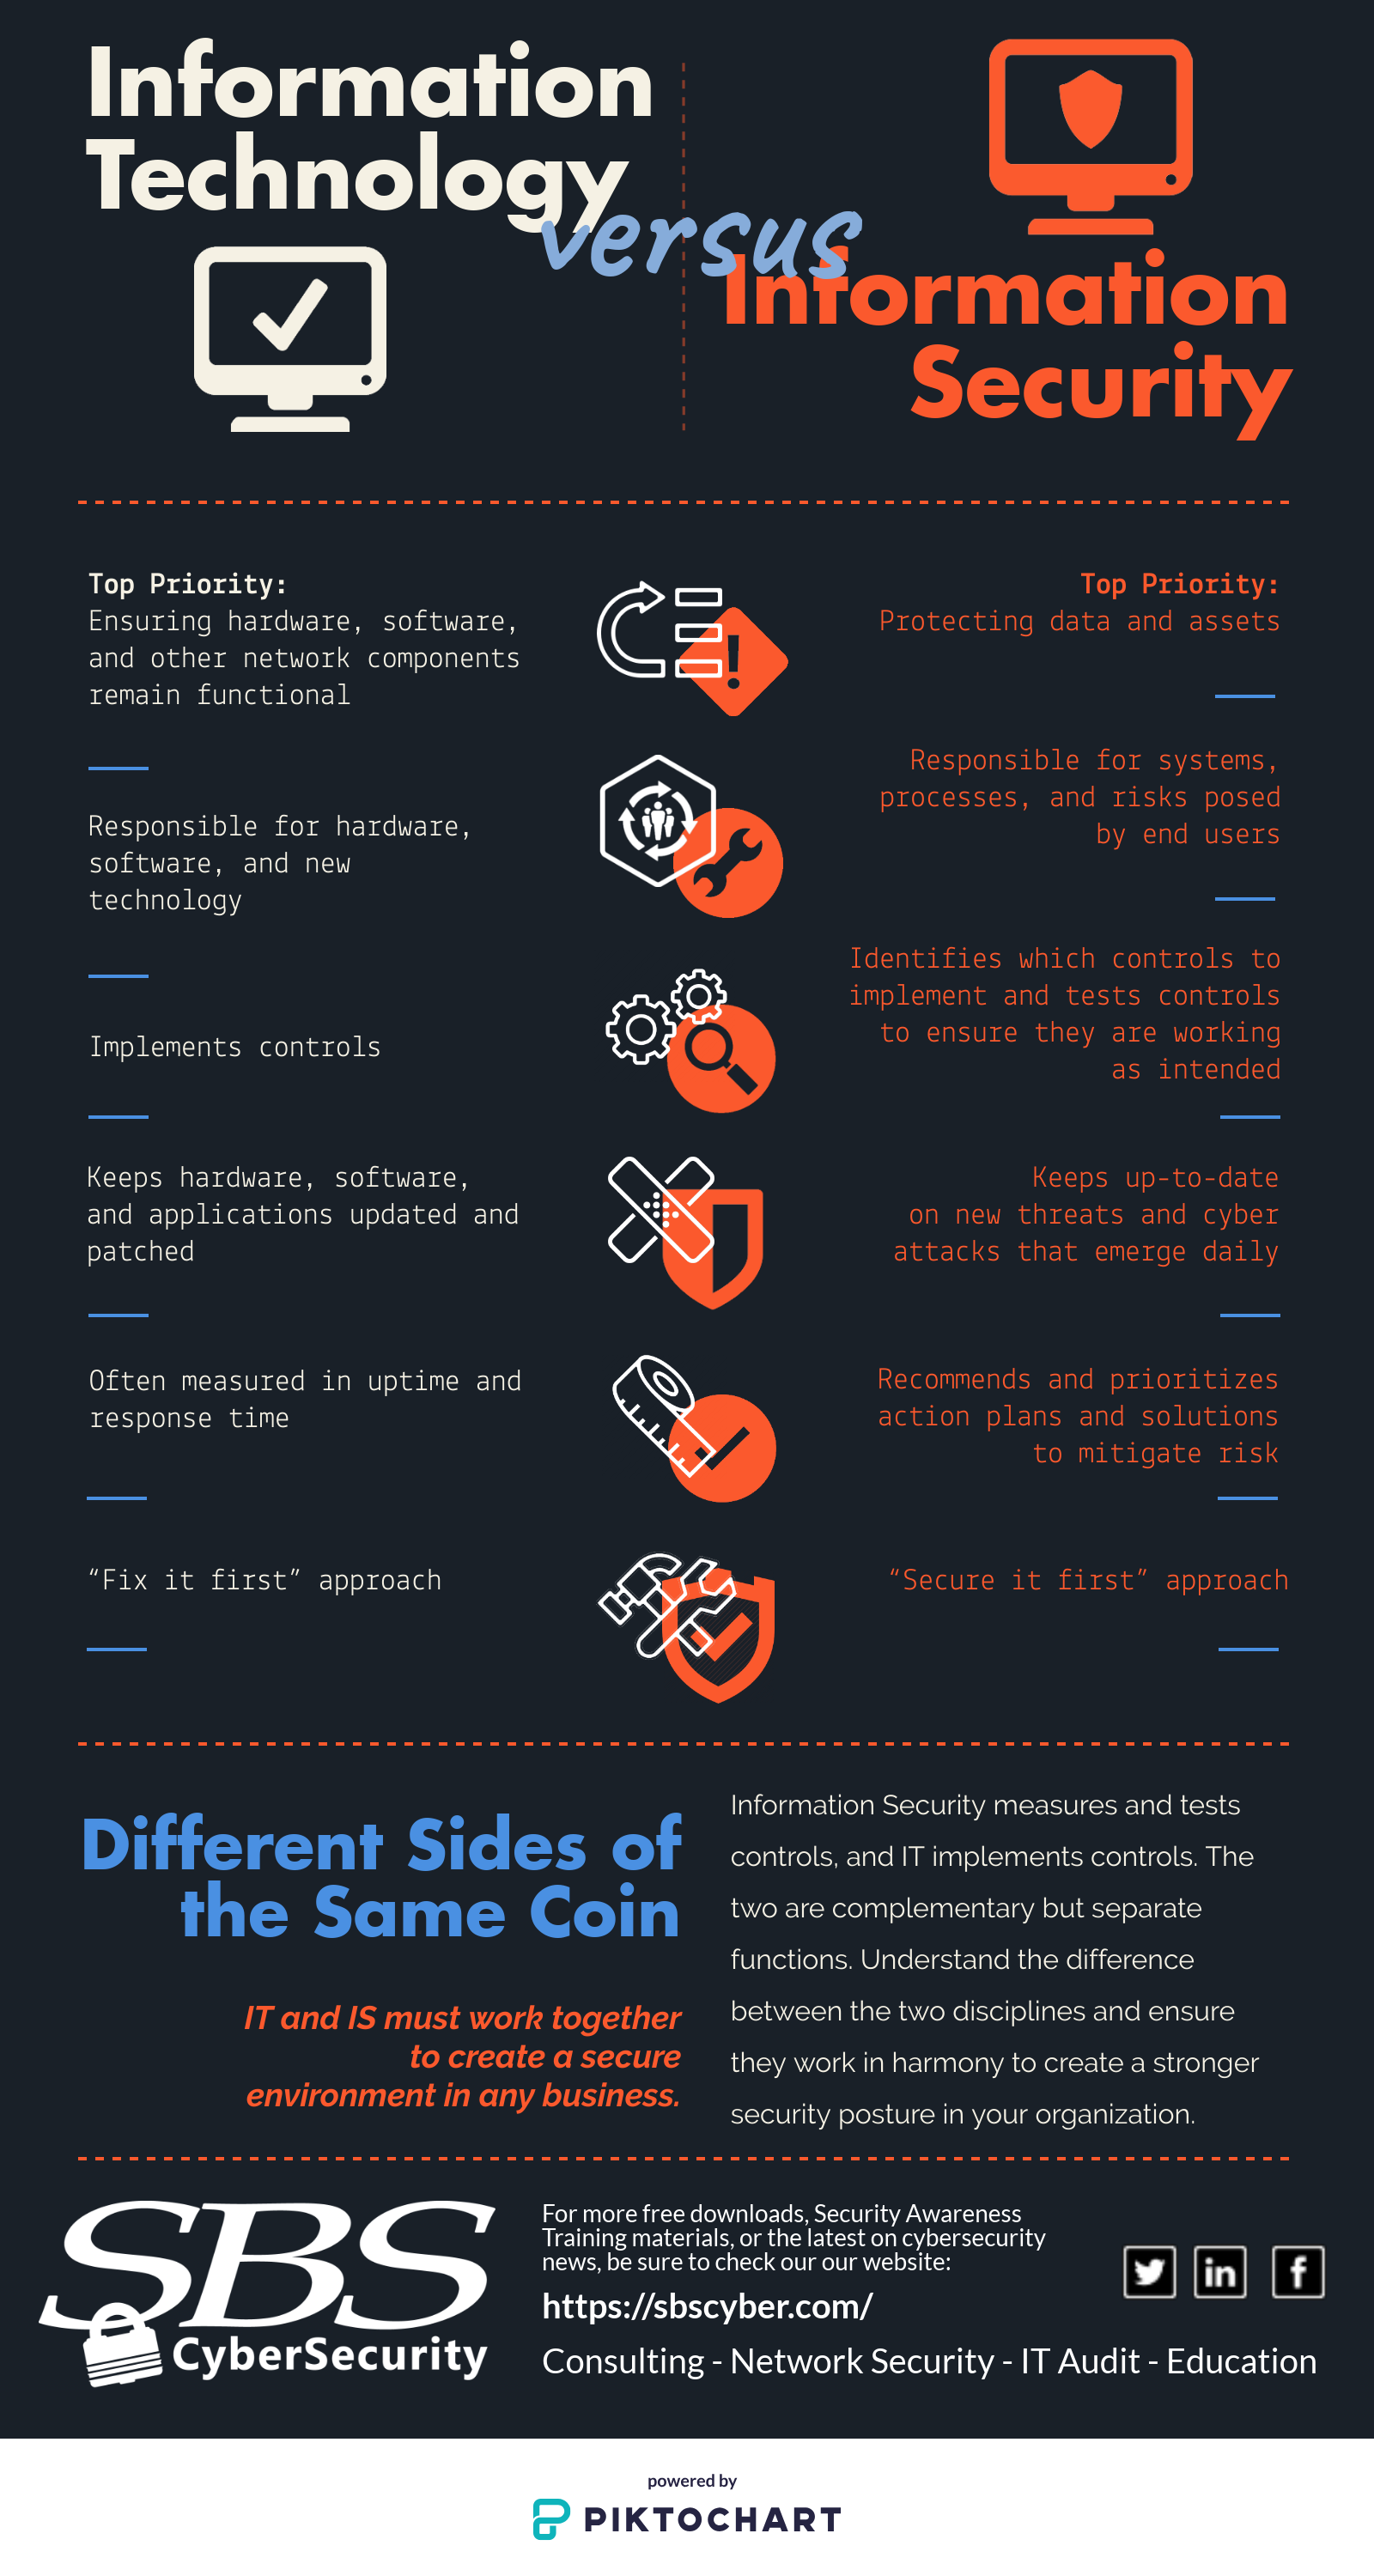 Free Posters and Infographic Downloads   SBS CyberSecurity